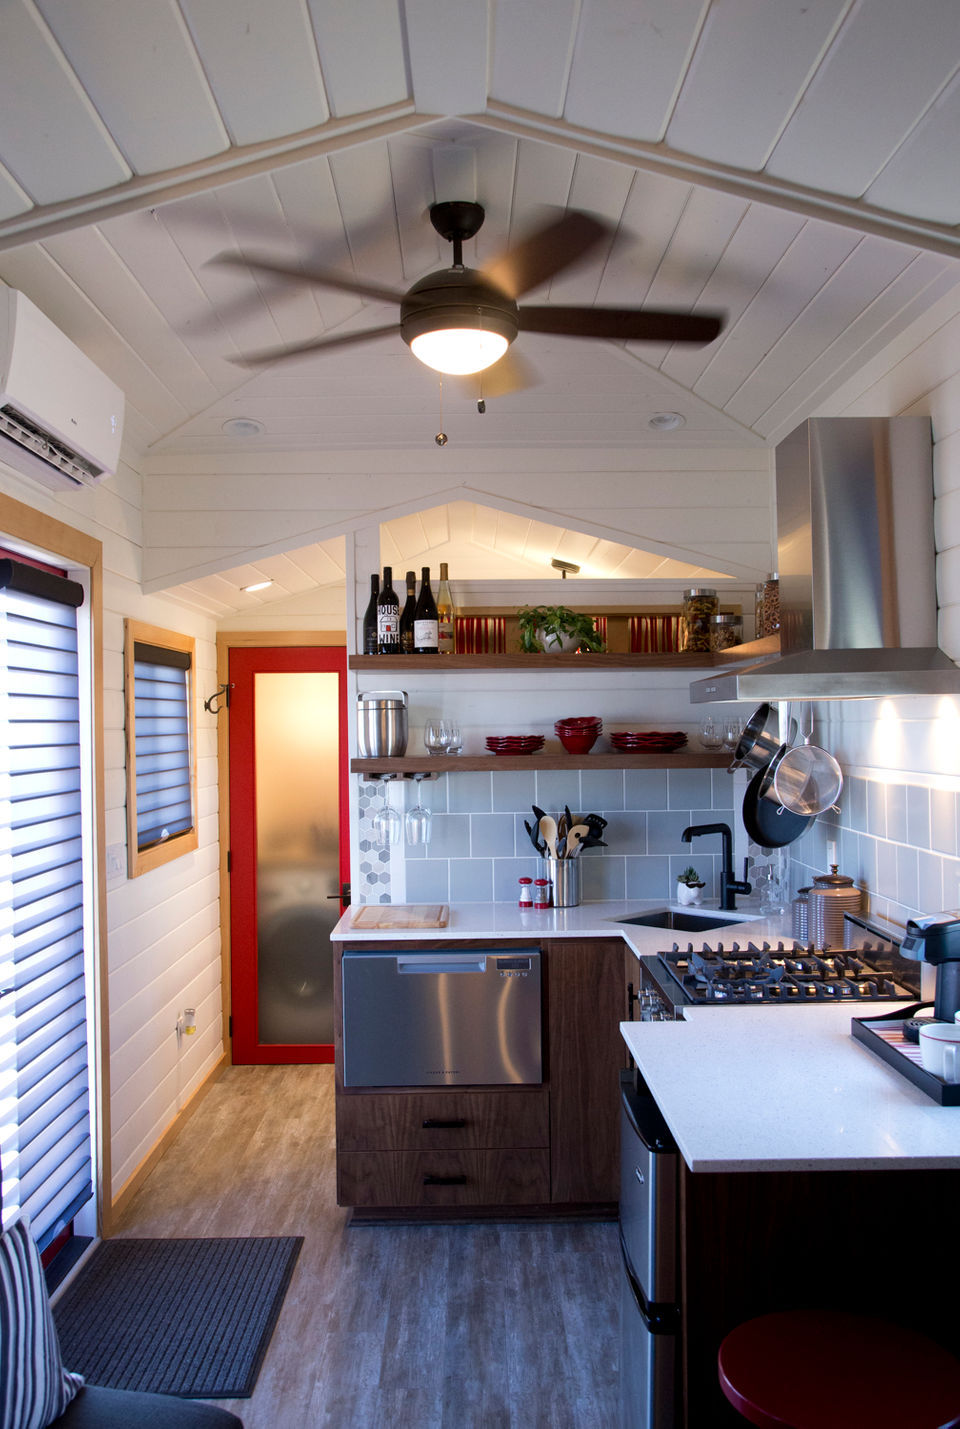 Tiny house helps veterans: Big donation from Street of Dreams builder (photos, video)